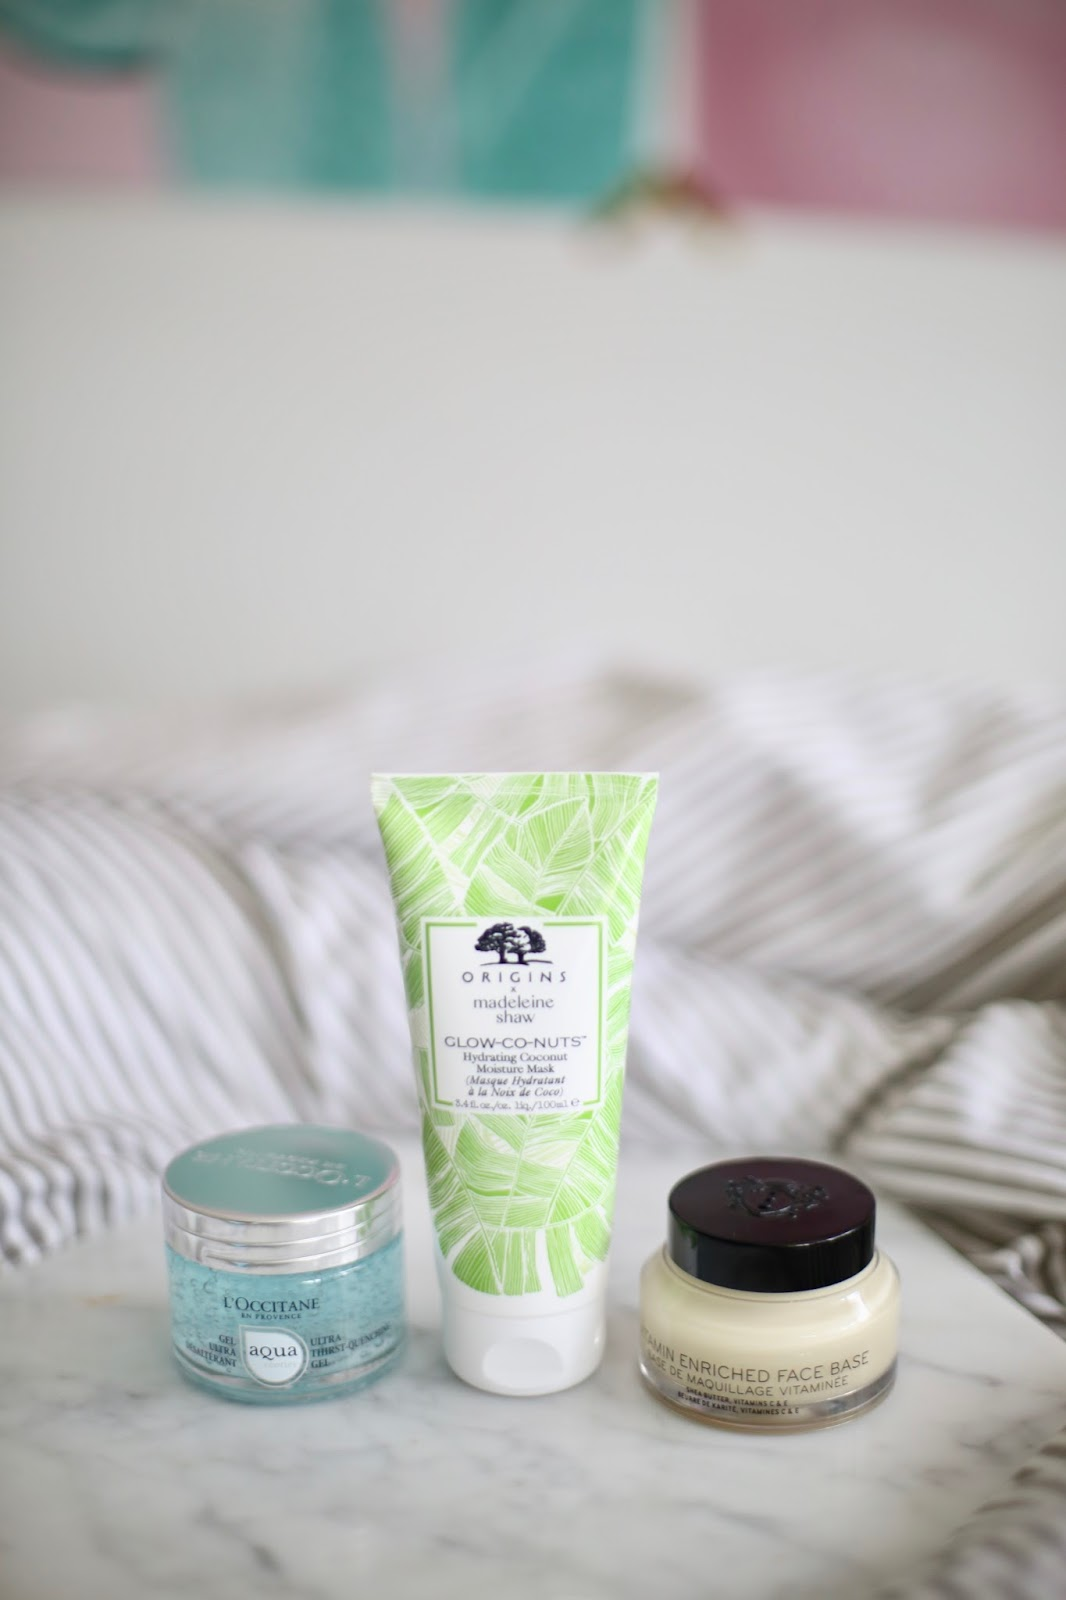 Origins x Madeleine Shaw Glow-Co-Nuts Hydrating Coconut Moisture Mask